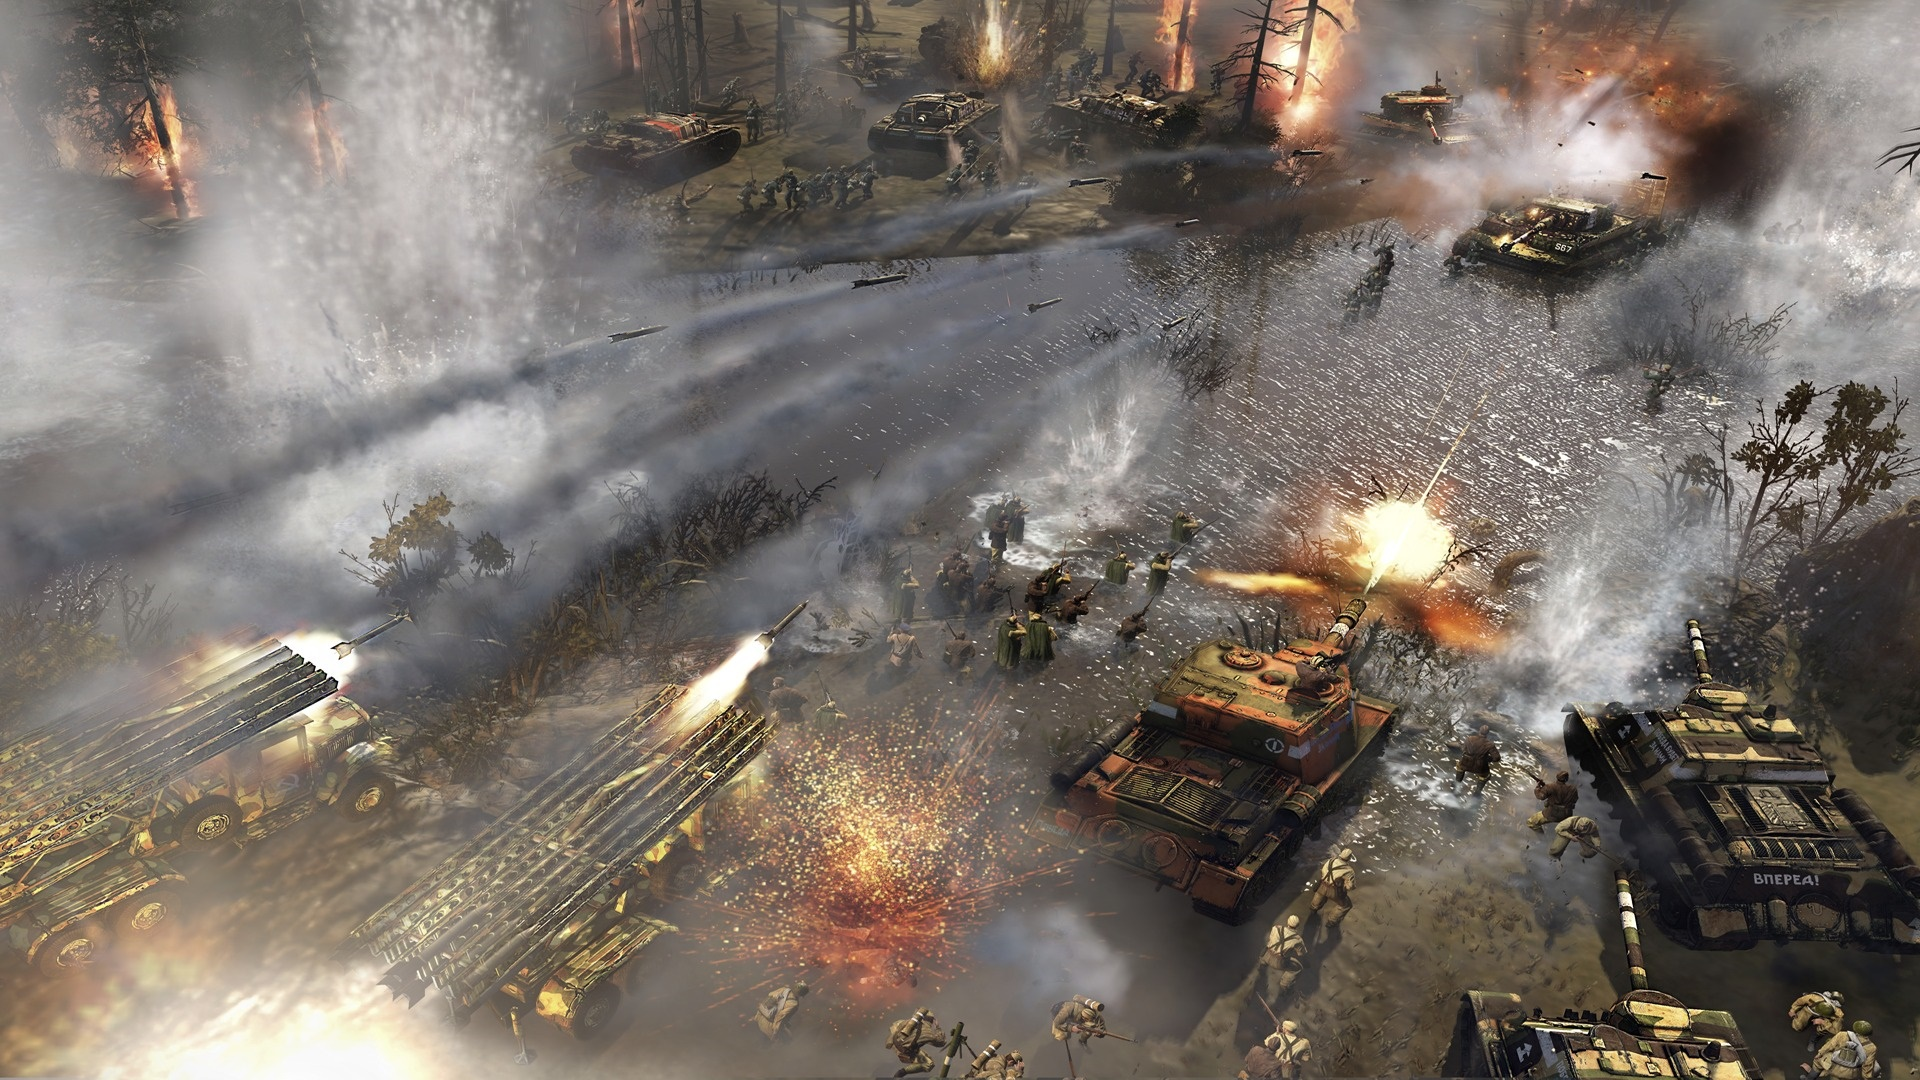 The Best Rts Games On Pc In 2020 Pcgamesn